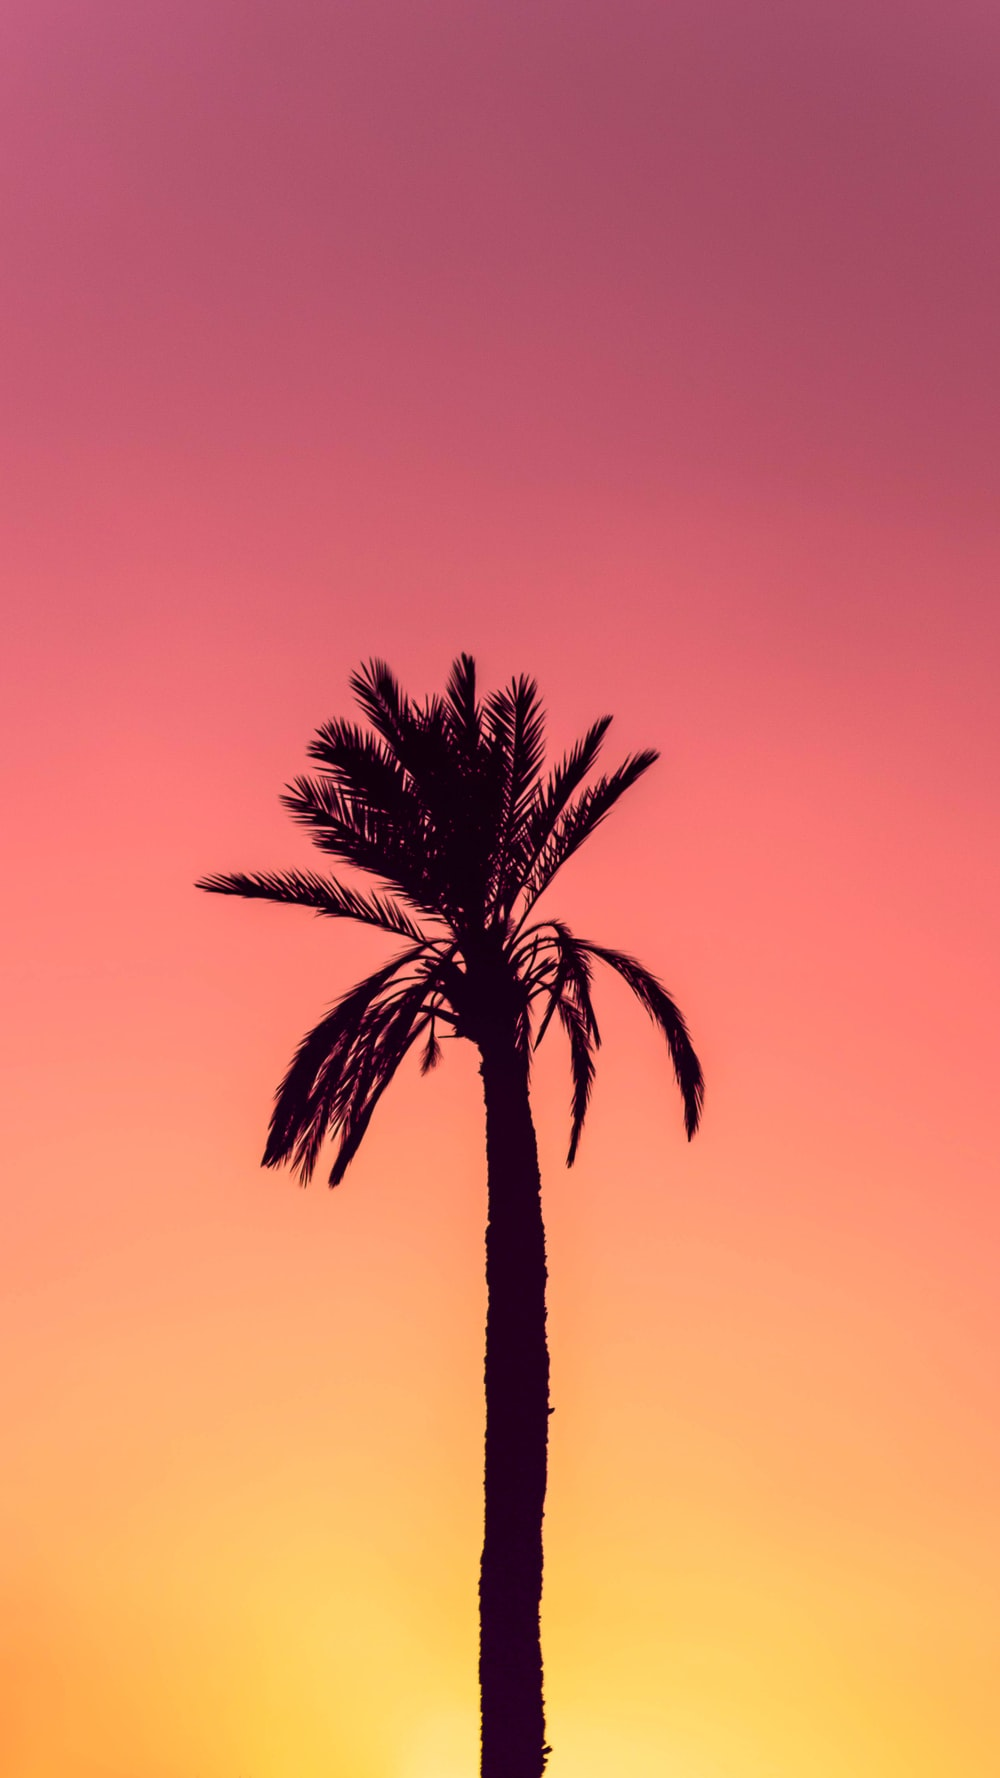 silhouette photography of palm tree